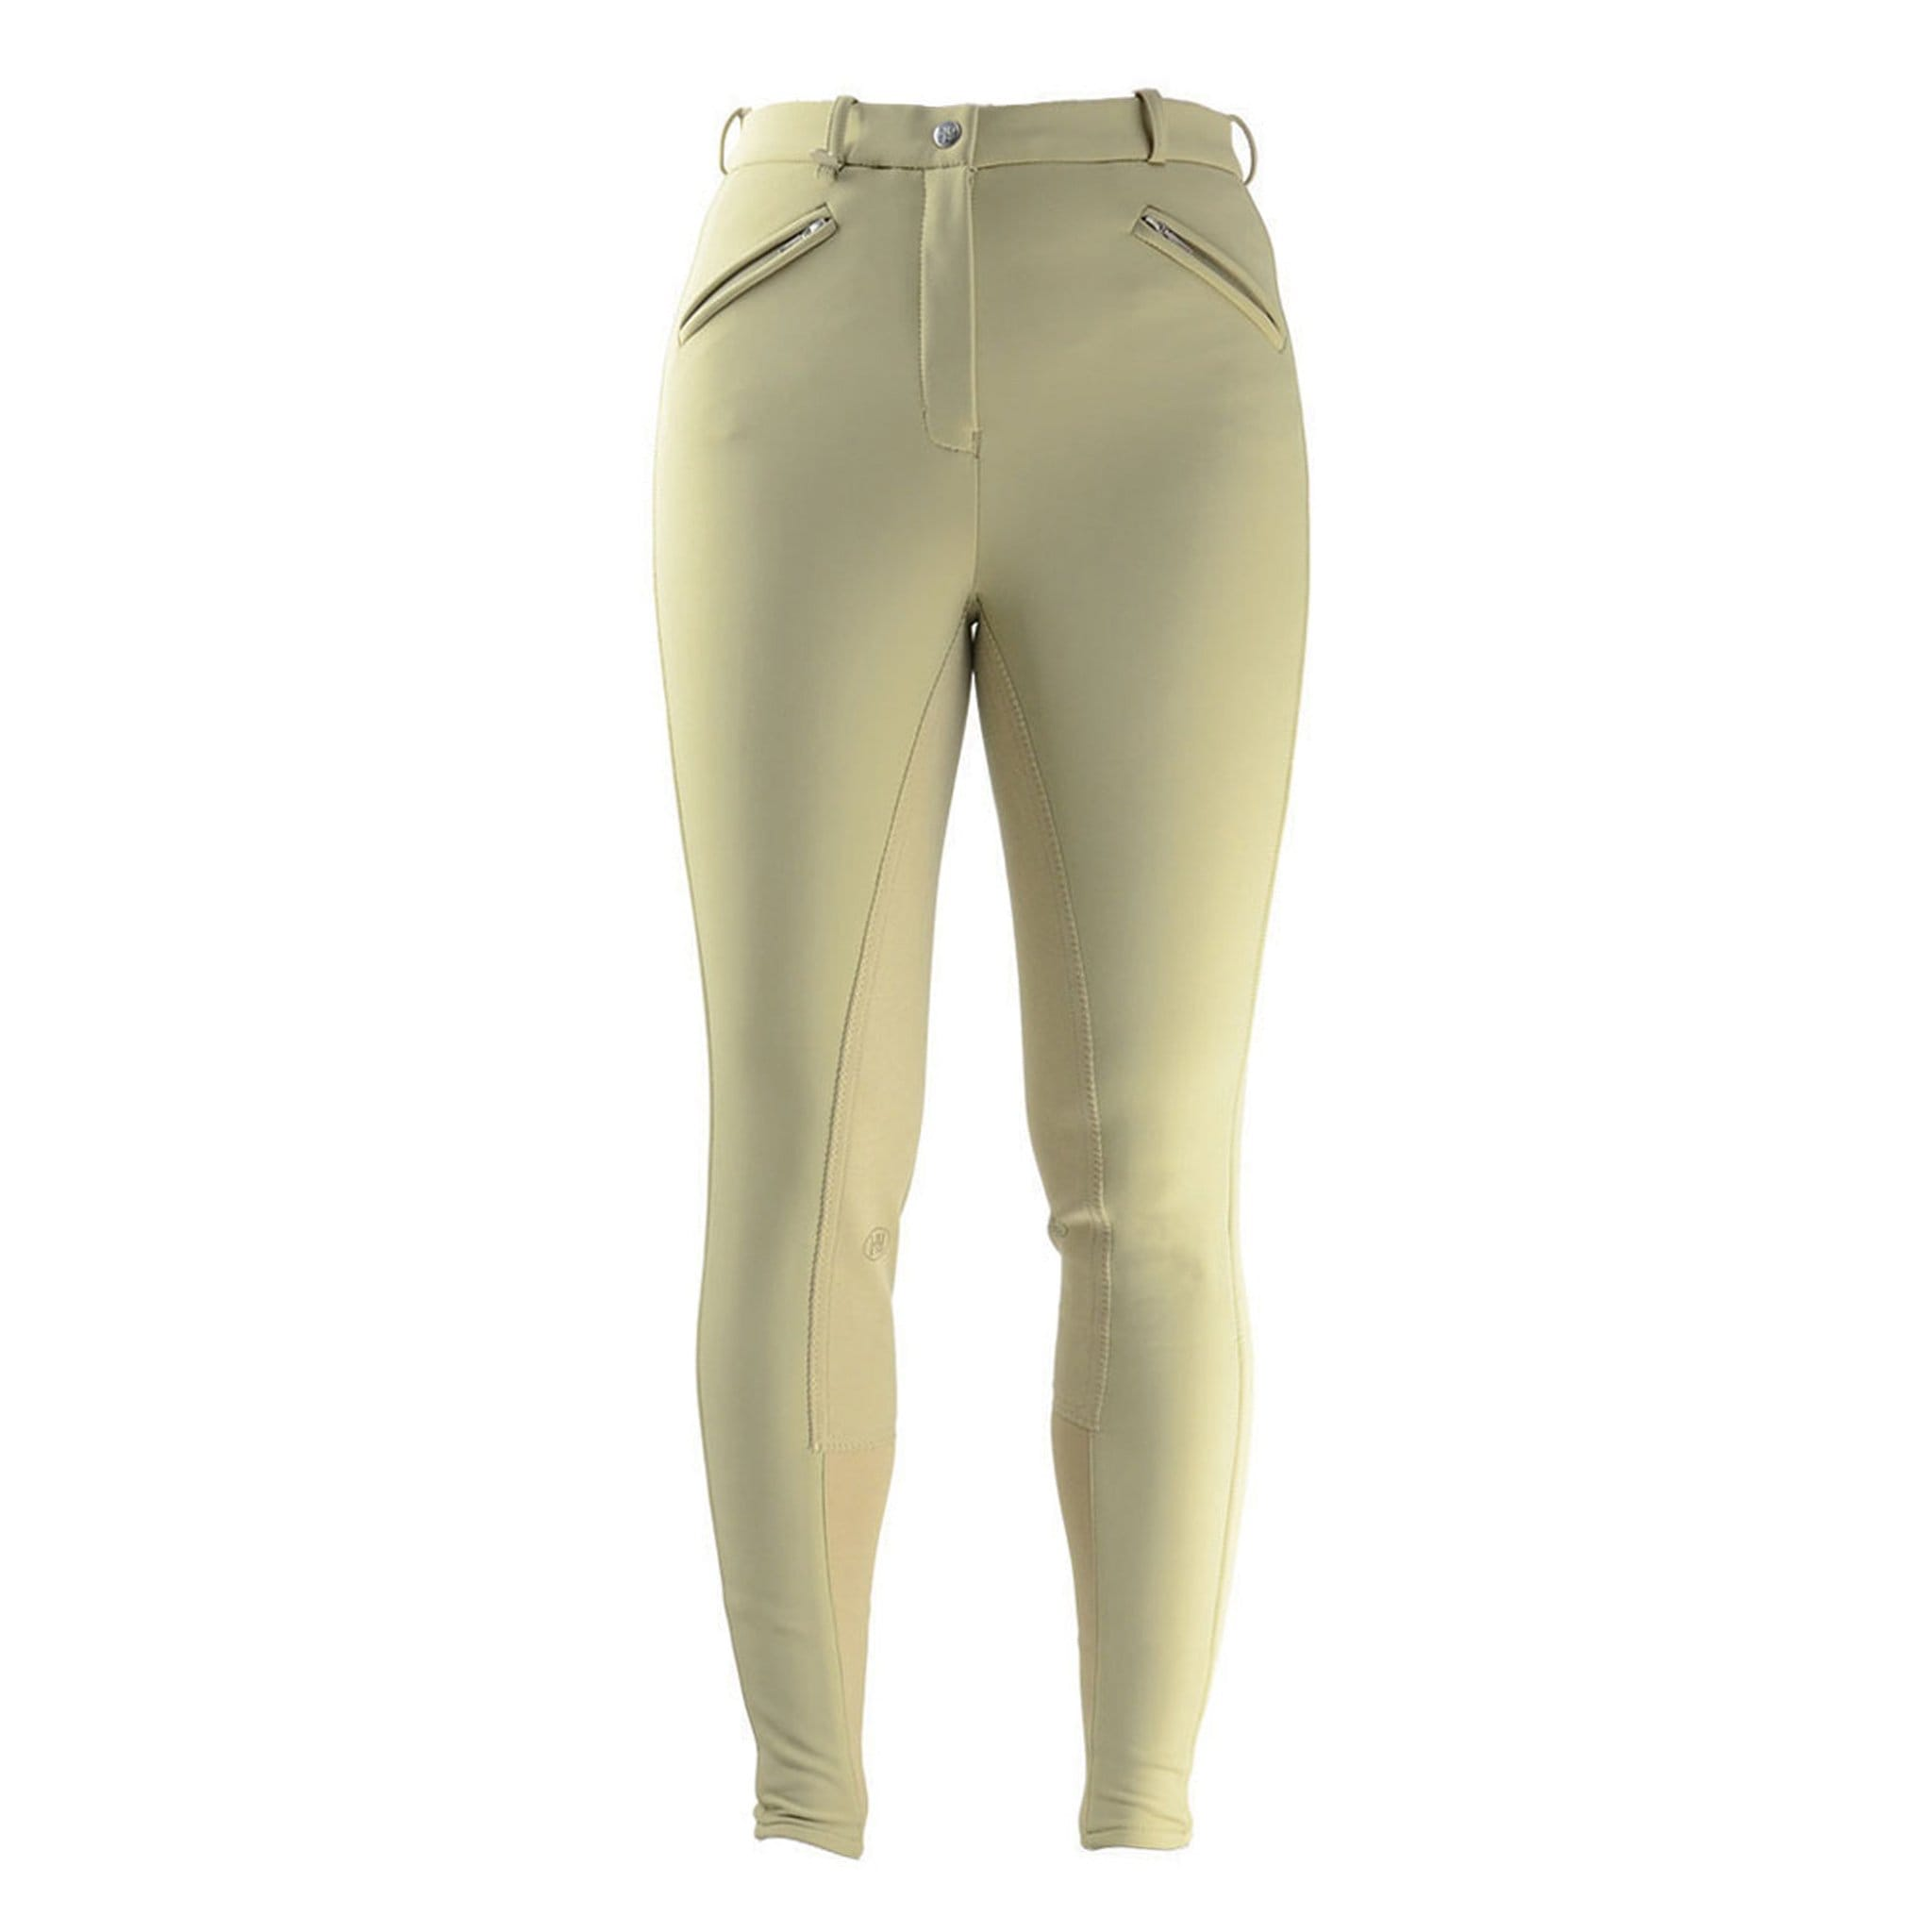 HyPerformance Winter Softshell Alos Full Seat Breeches Beige Front 4570